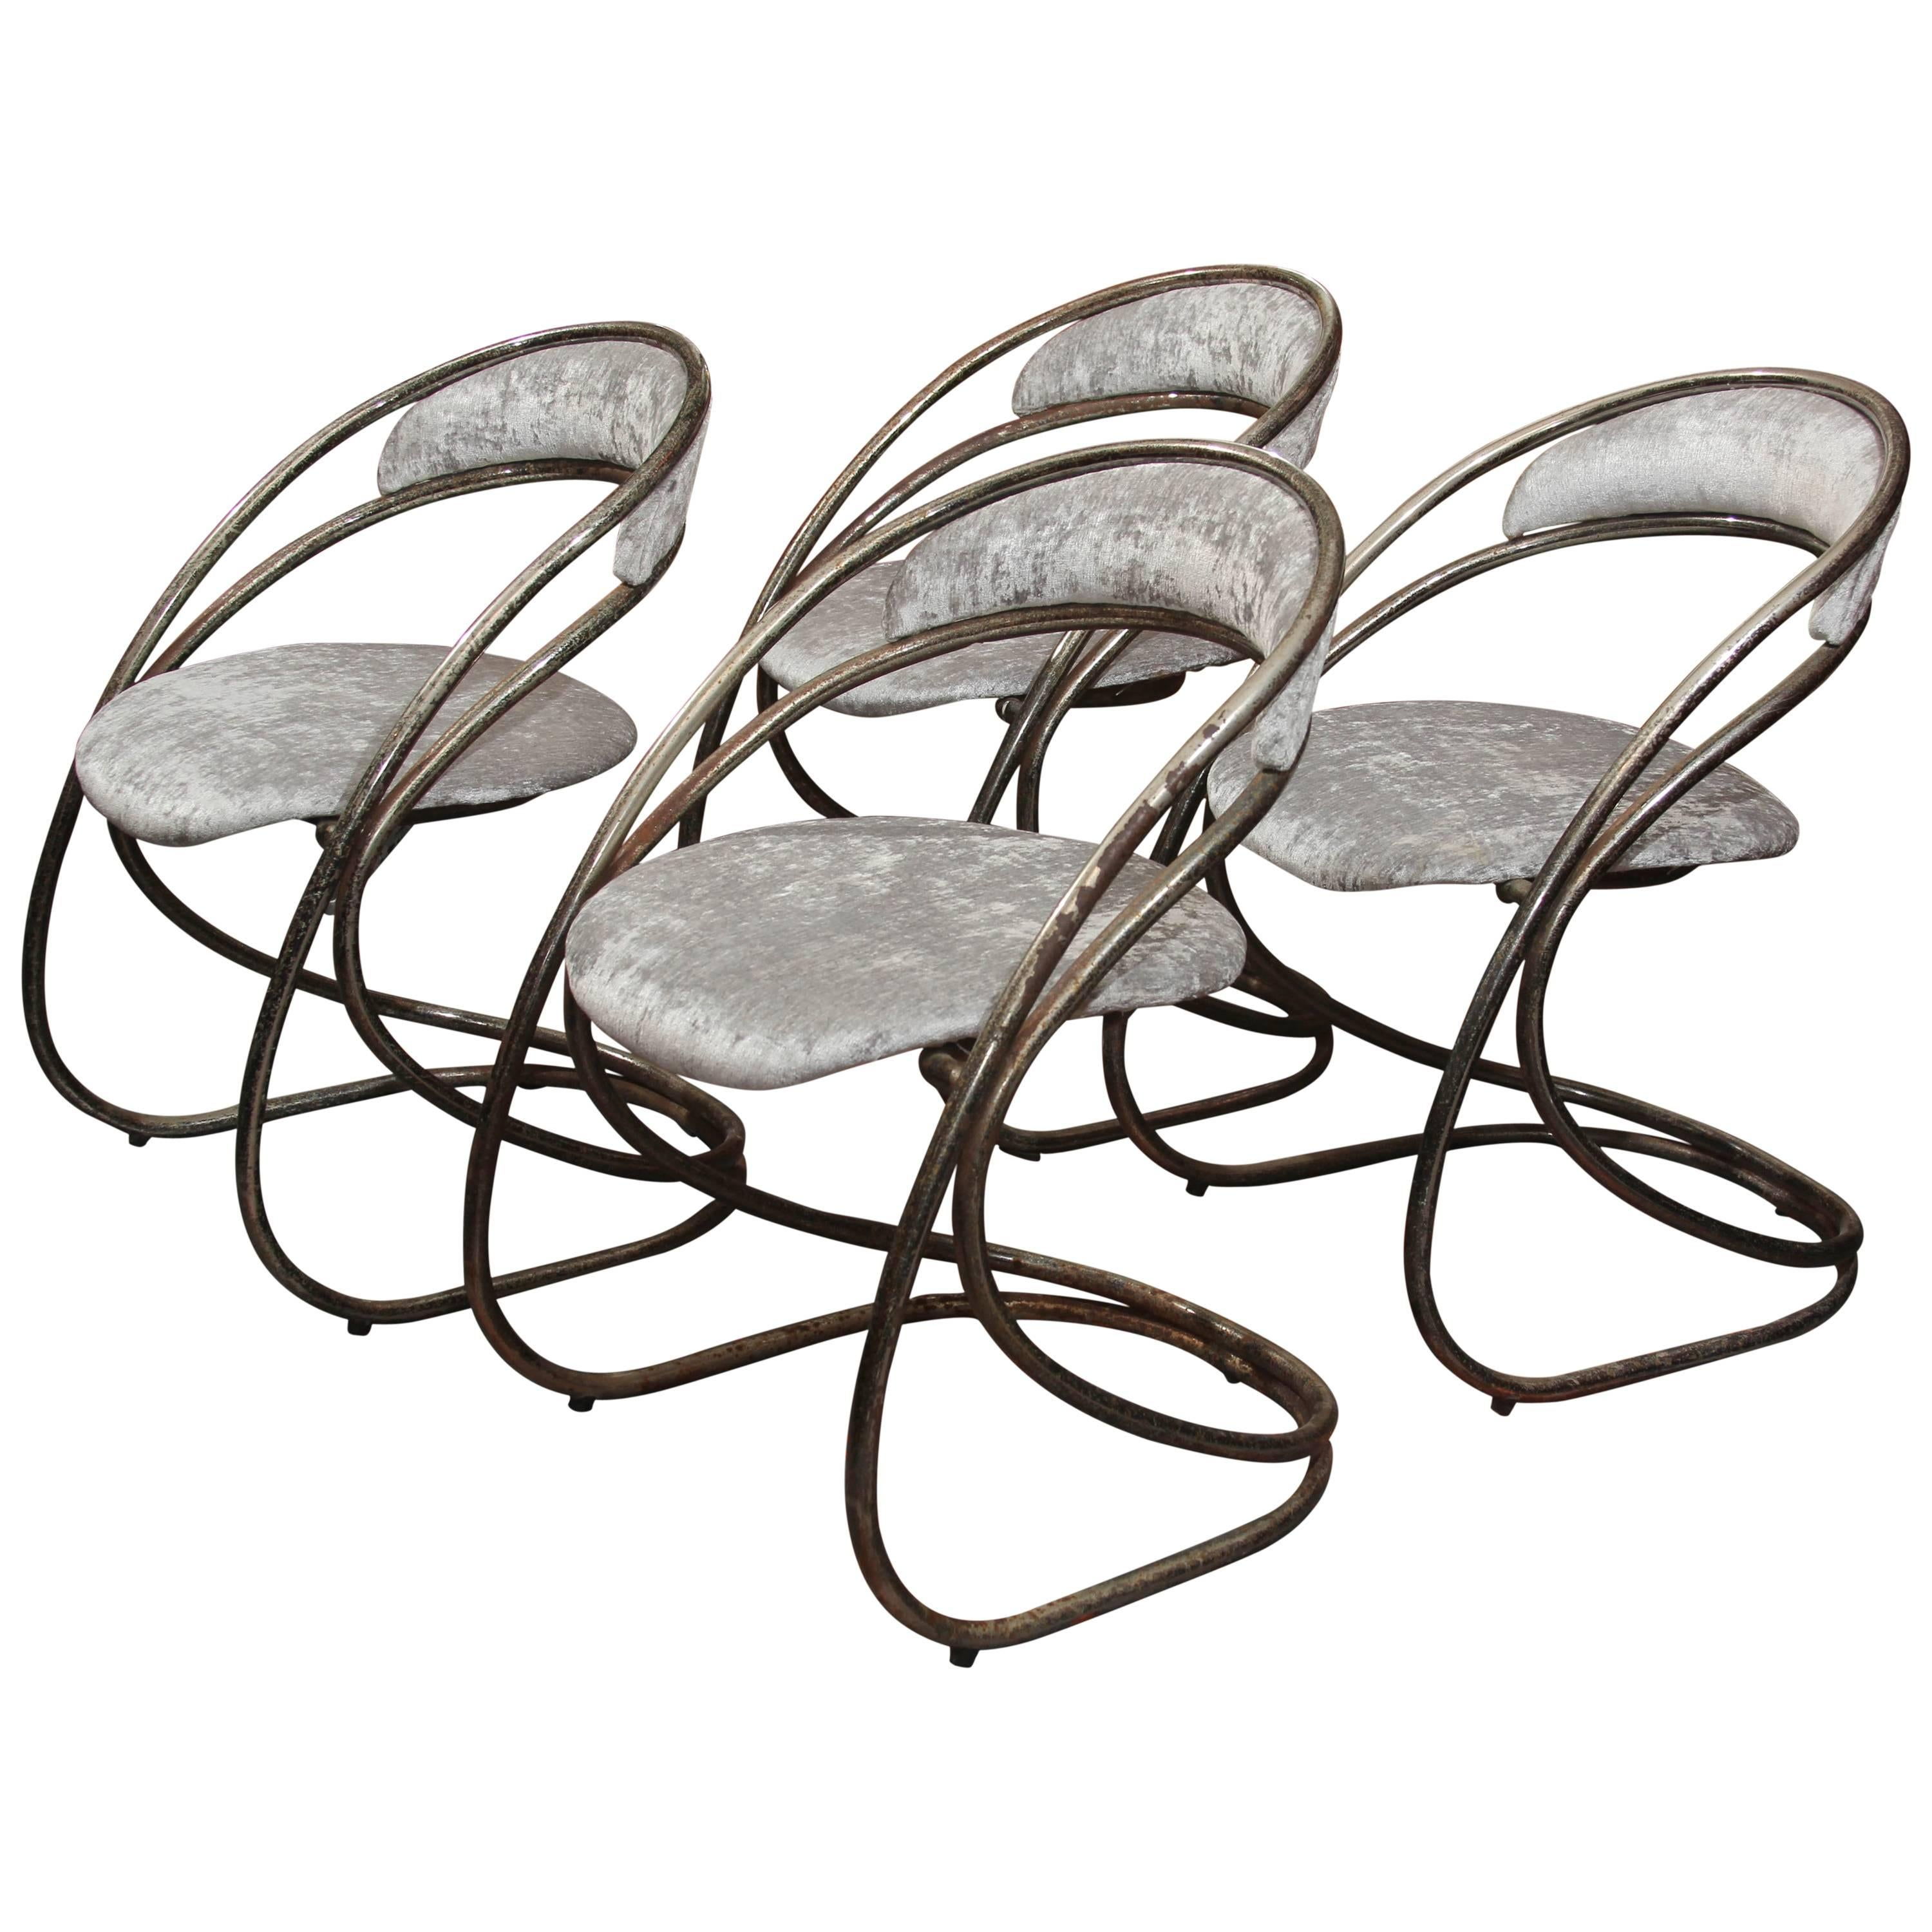 Set of Four French Casino Chairs